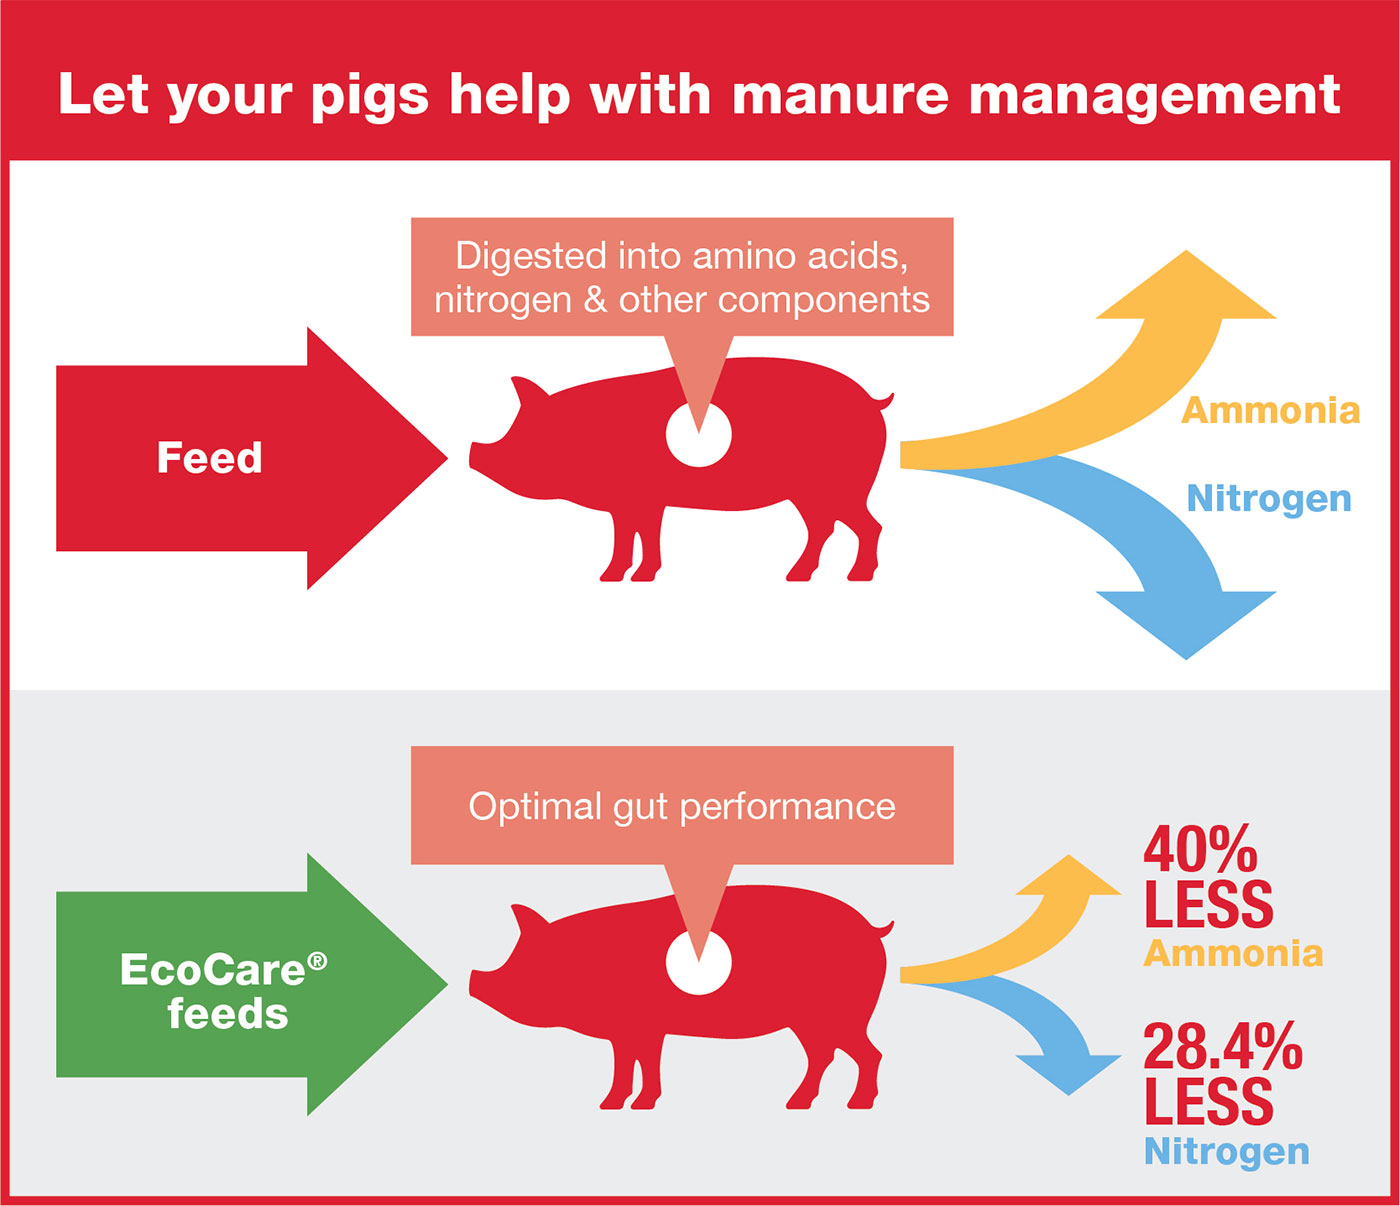 Put your pigs in charge of manure management - Company news